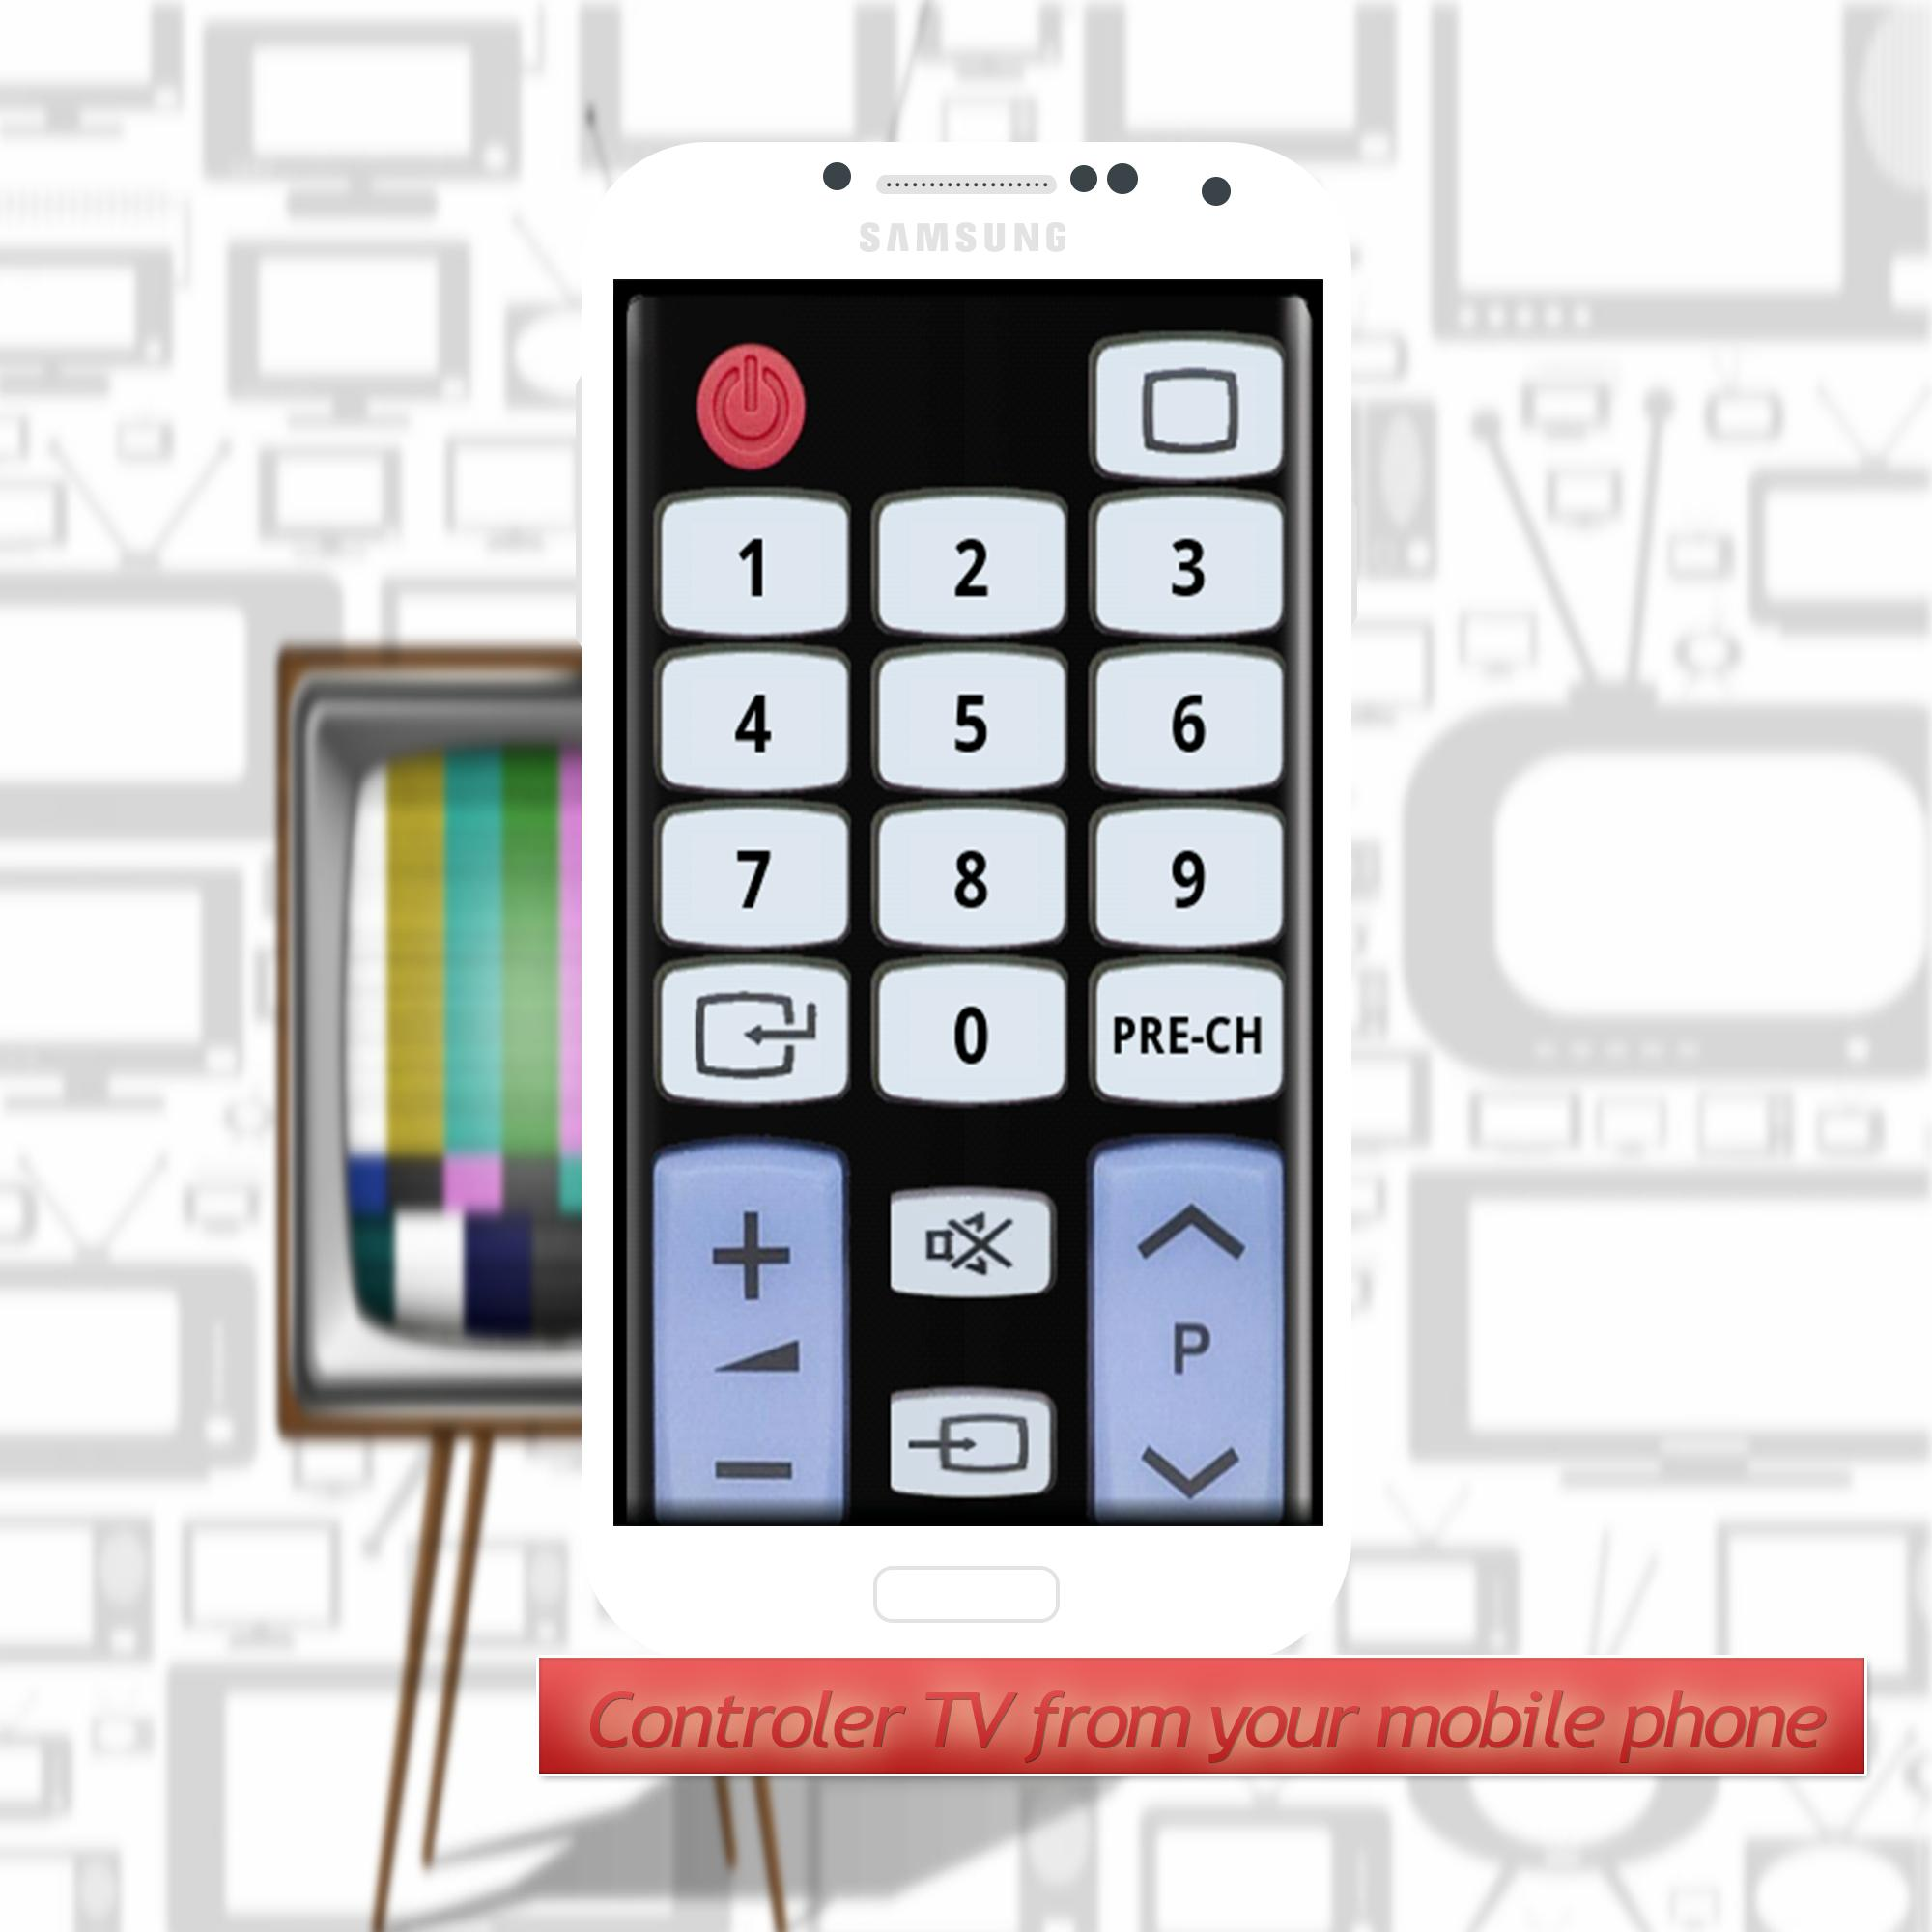 Remote Control TV plus 2 for Android - APK Download